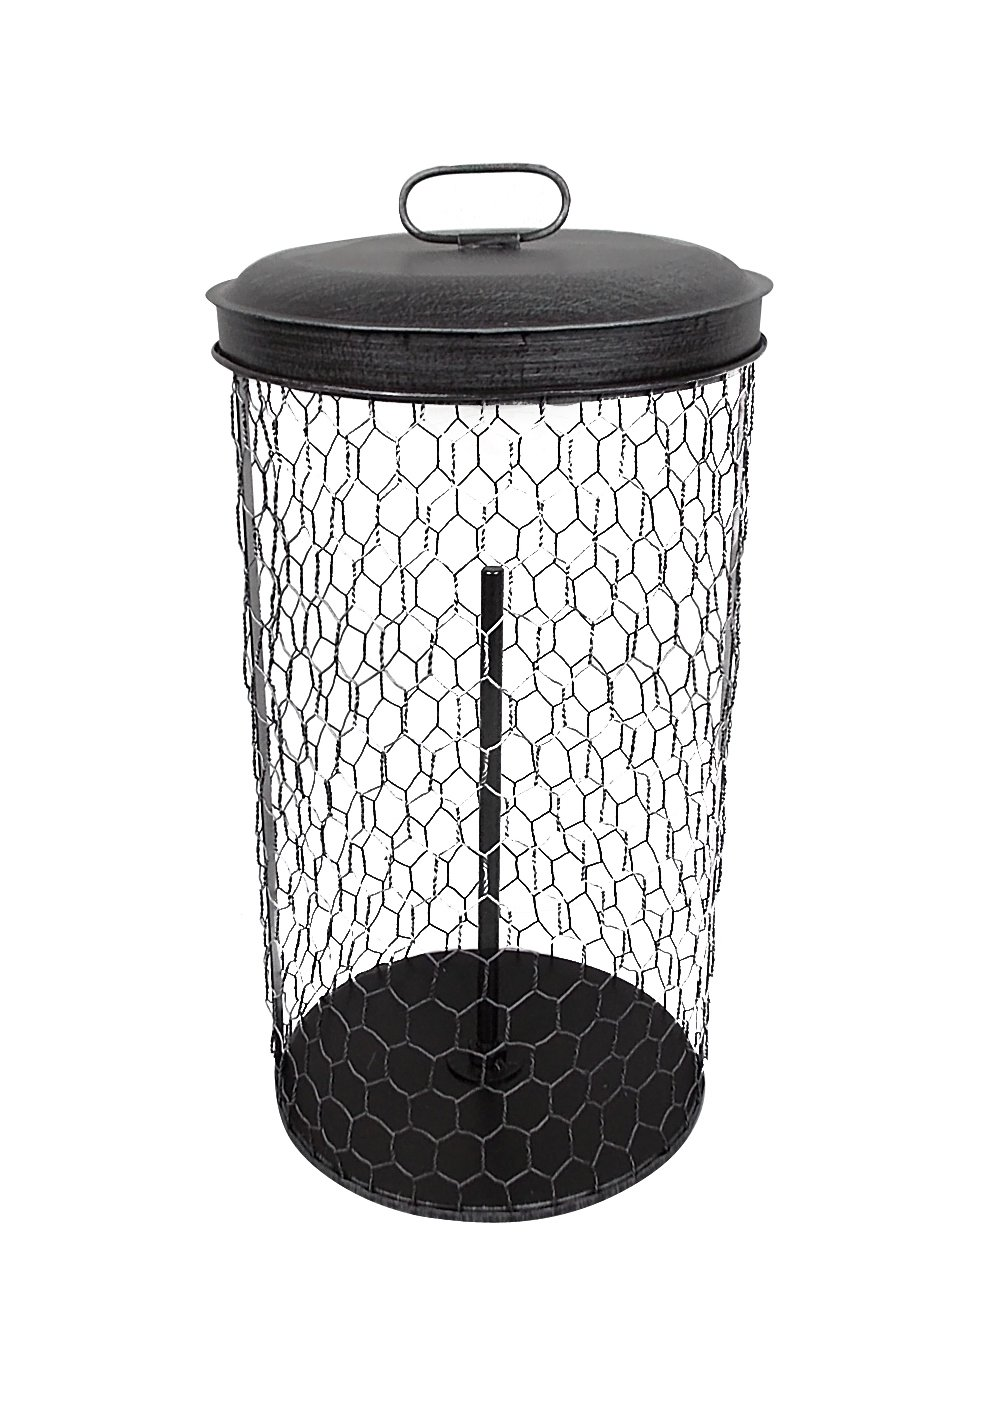 Craft Outlet Tin Paper Towel Basket with Lid, 6.5 x 13-Inch, Silver